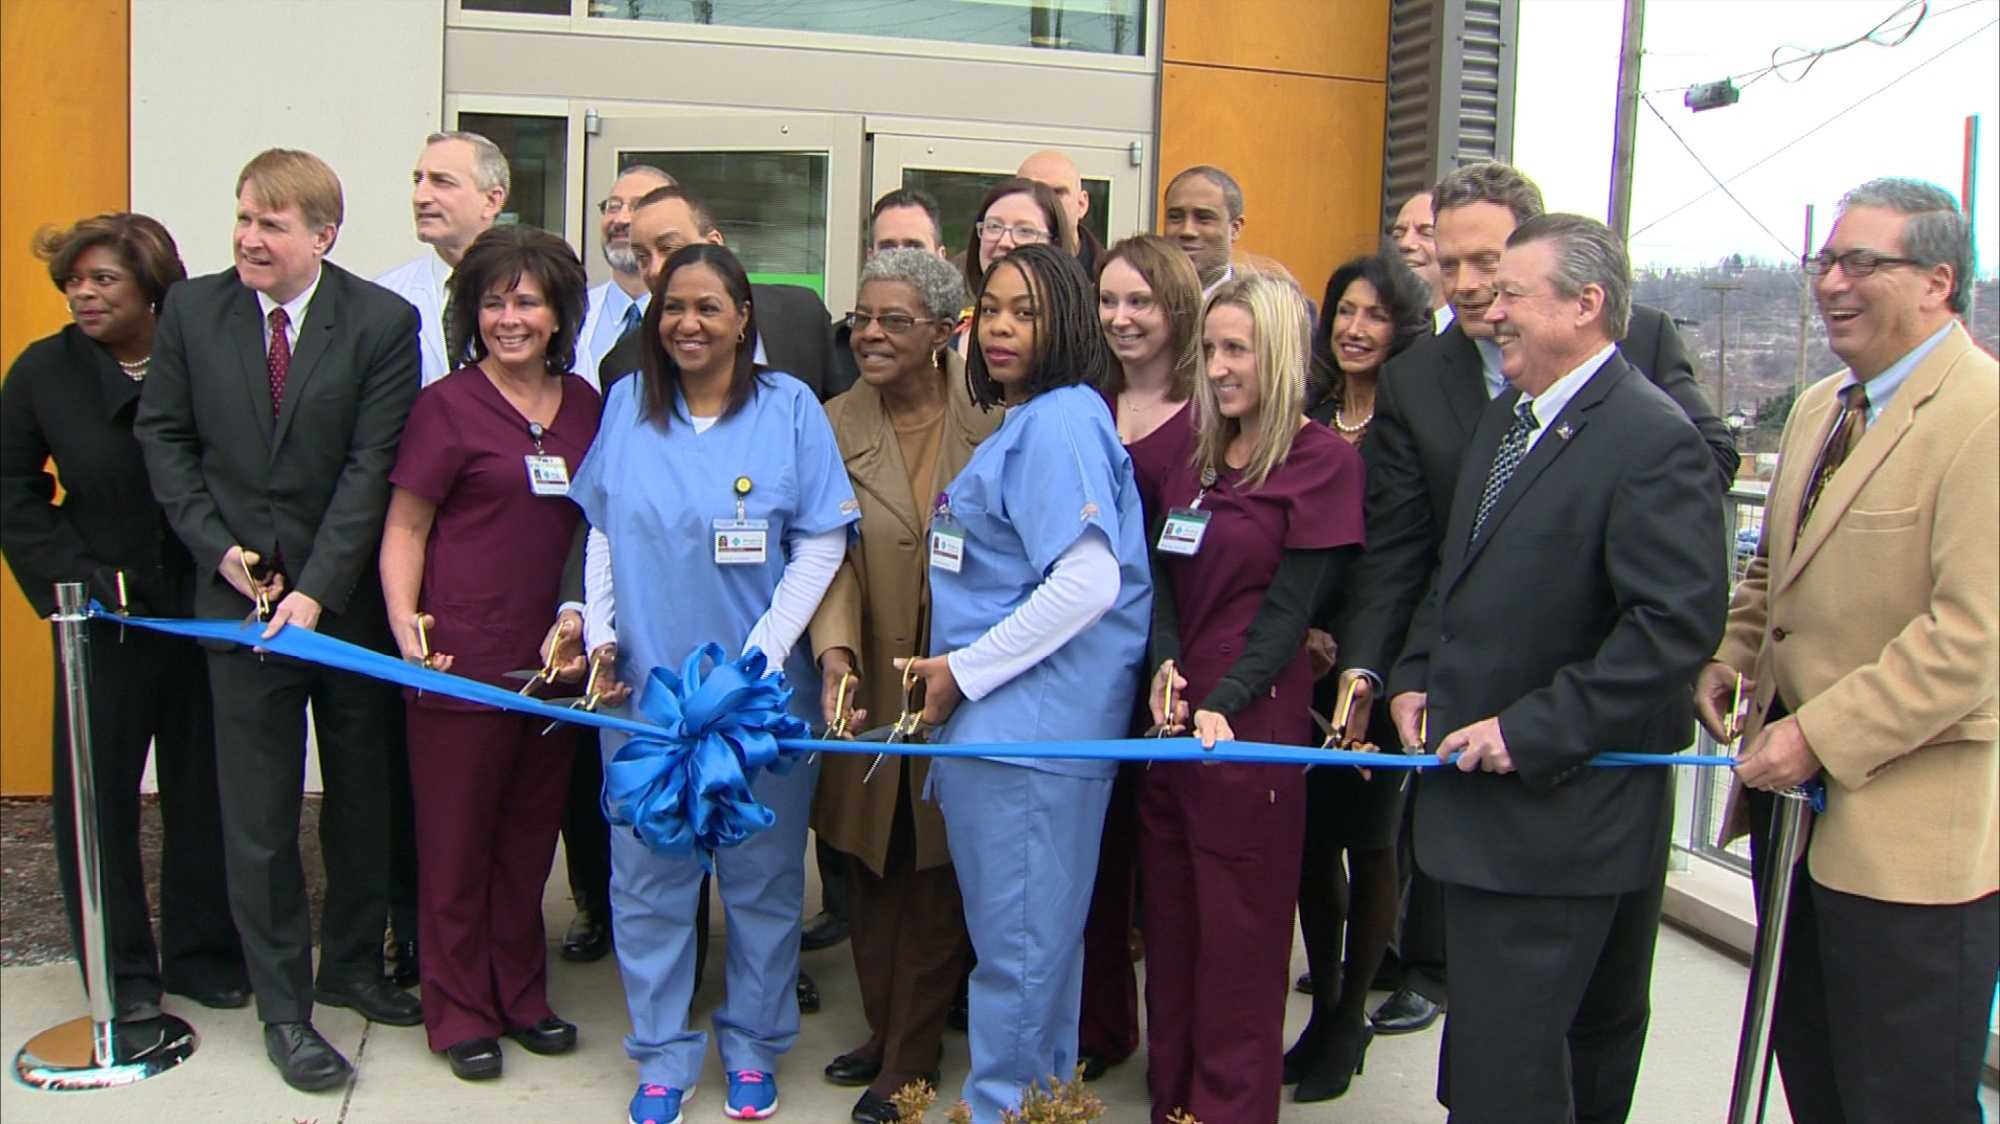 A ribbon-cutting ceremony at the Allegheny Health Network's urgent care center in Braddock.